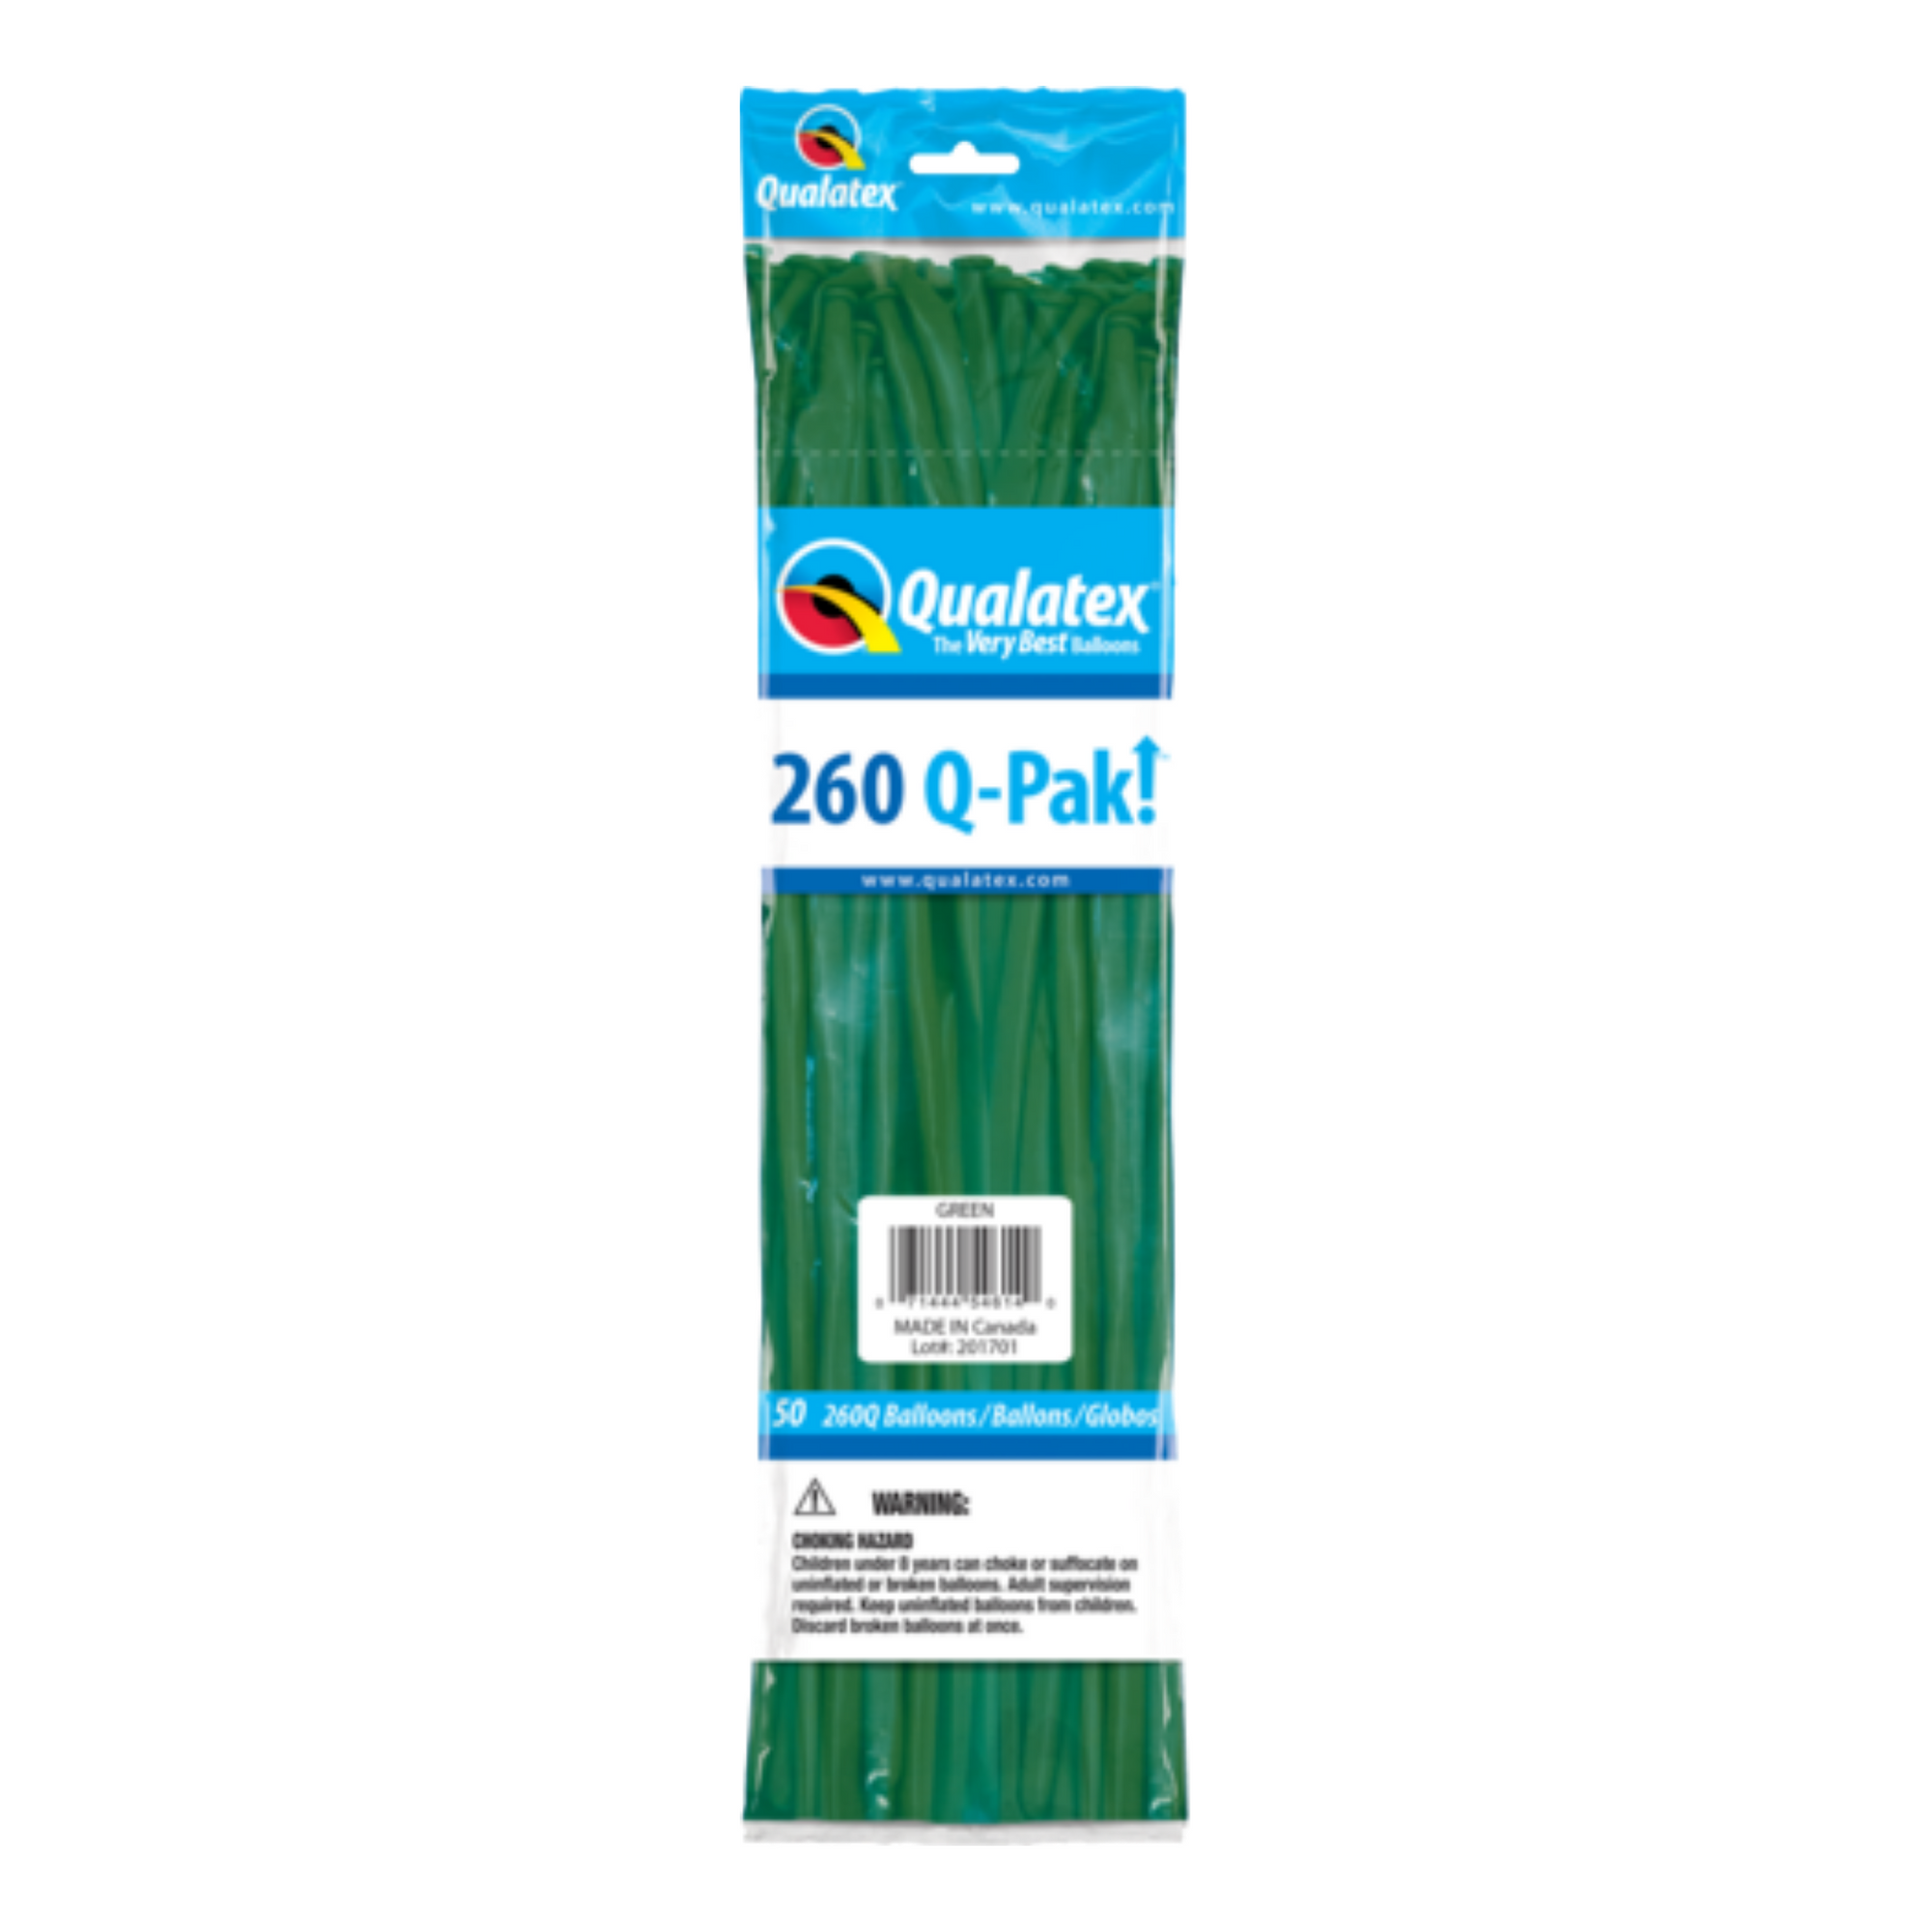 Qualatex 260 Q-Pak (50 pack) GREEN